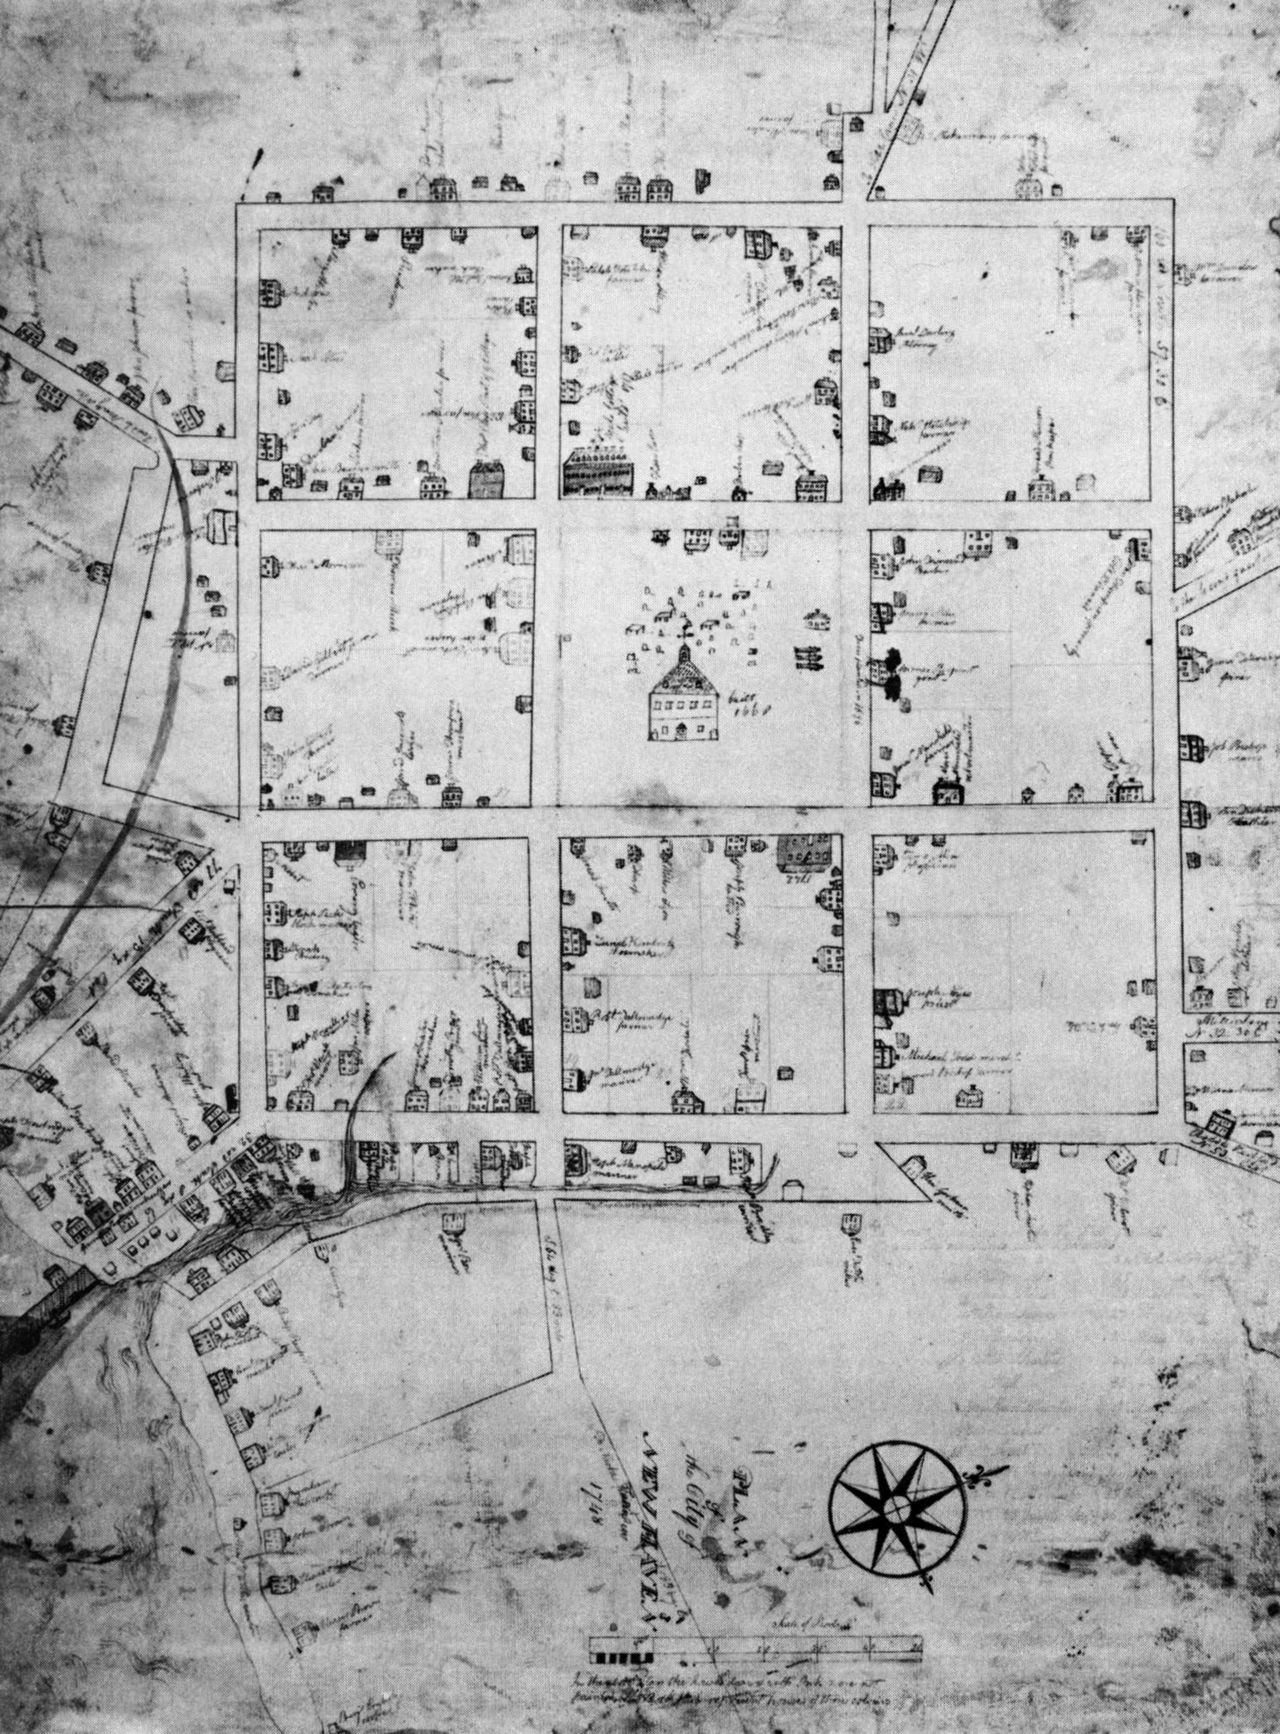 archiveofaffinities: New Haven, Connecticut, Plan, 1748 | Drafting ...